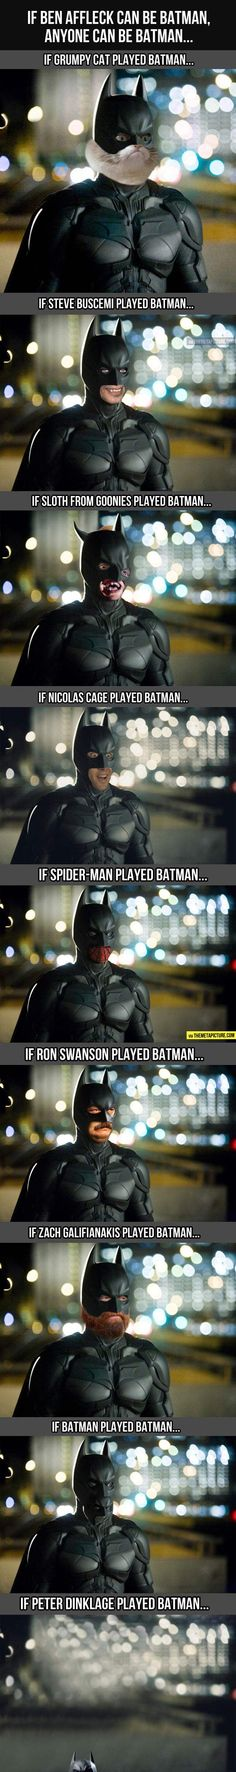 Anyone can play Batman